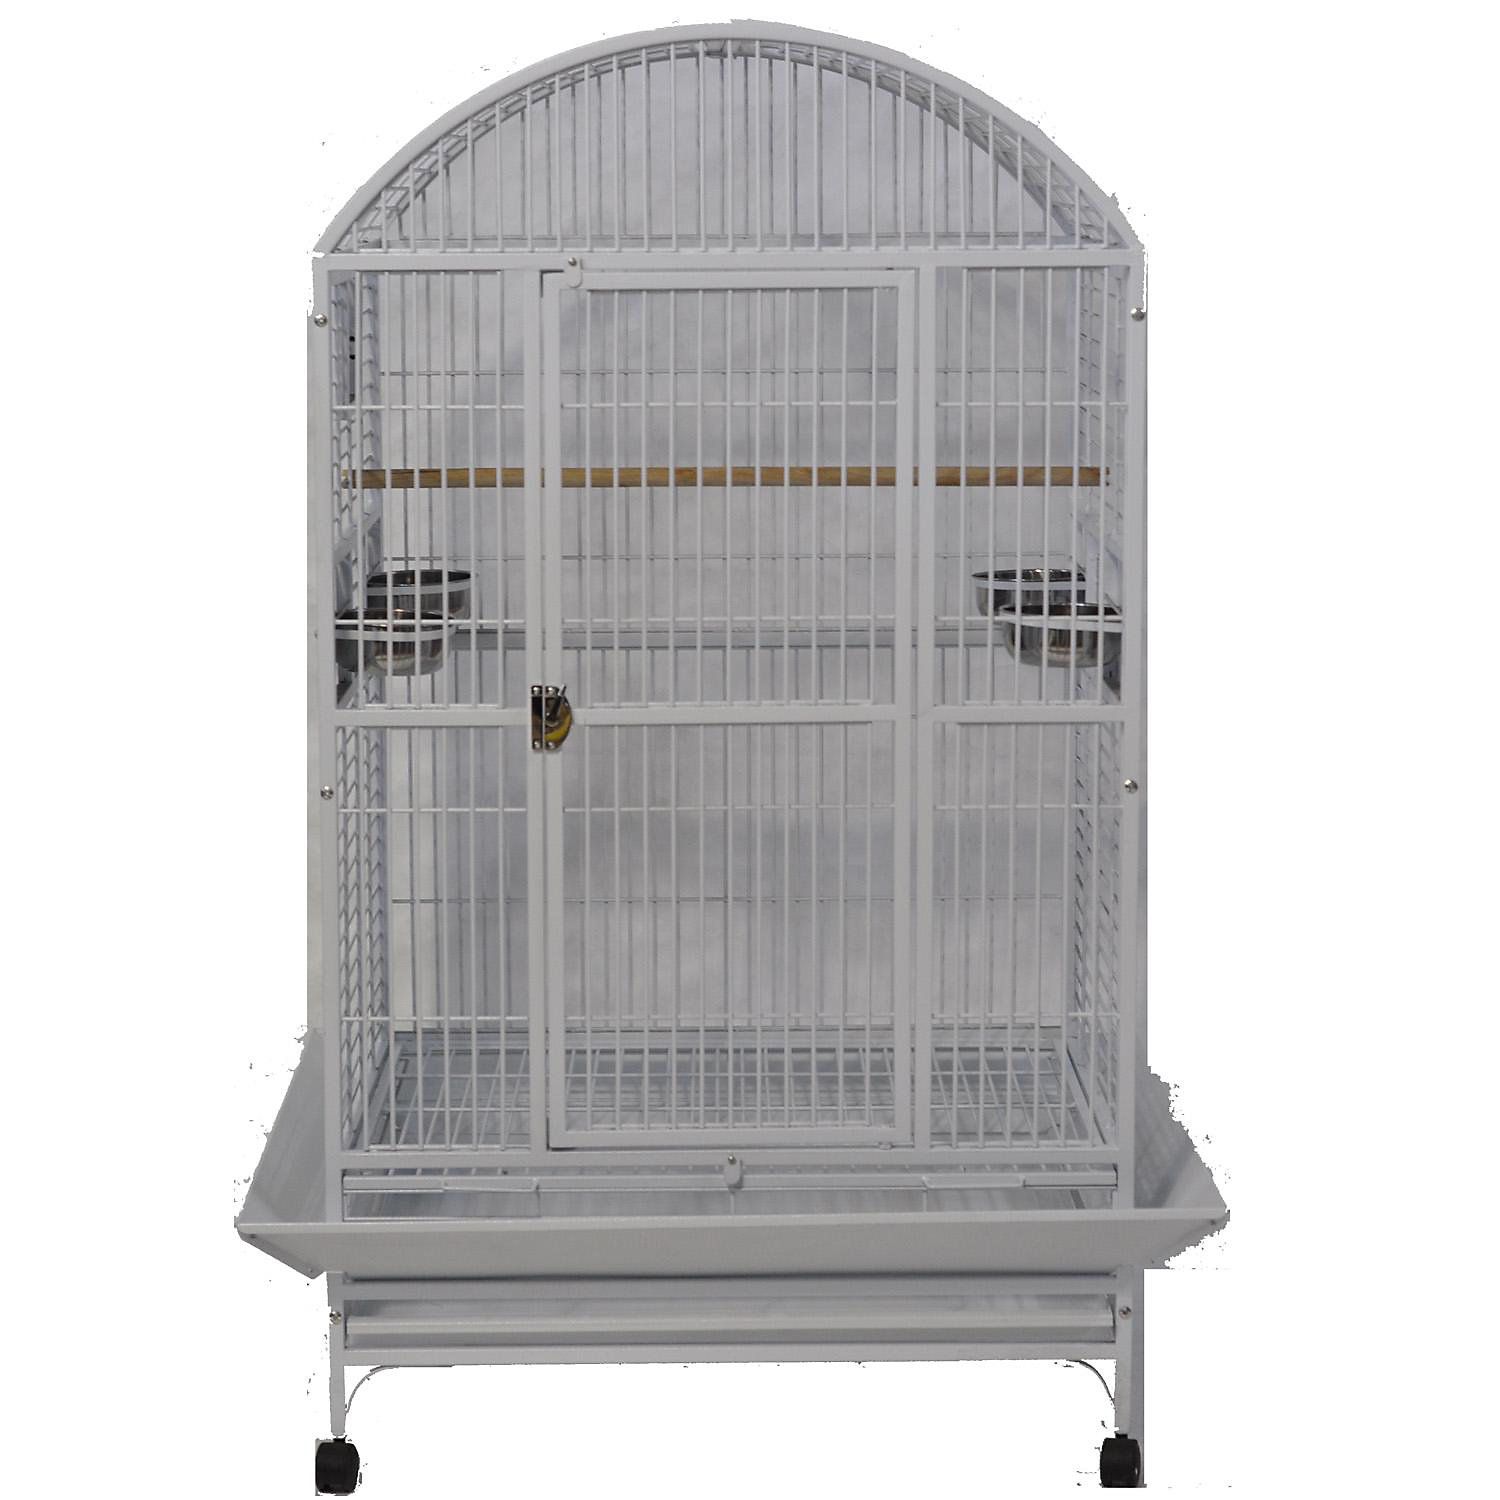 Ae Cage Company Stainless Steel Palace Dometop X Large Bird Cage 36 L X 28 W X 65 H Gray